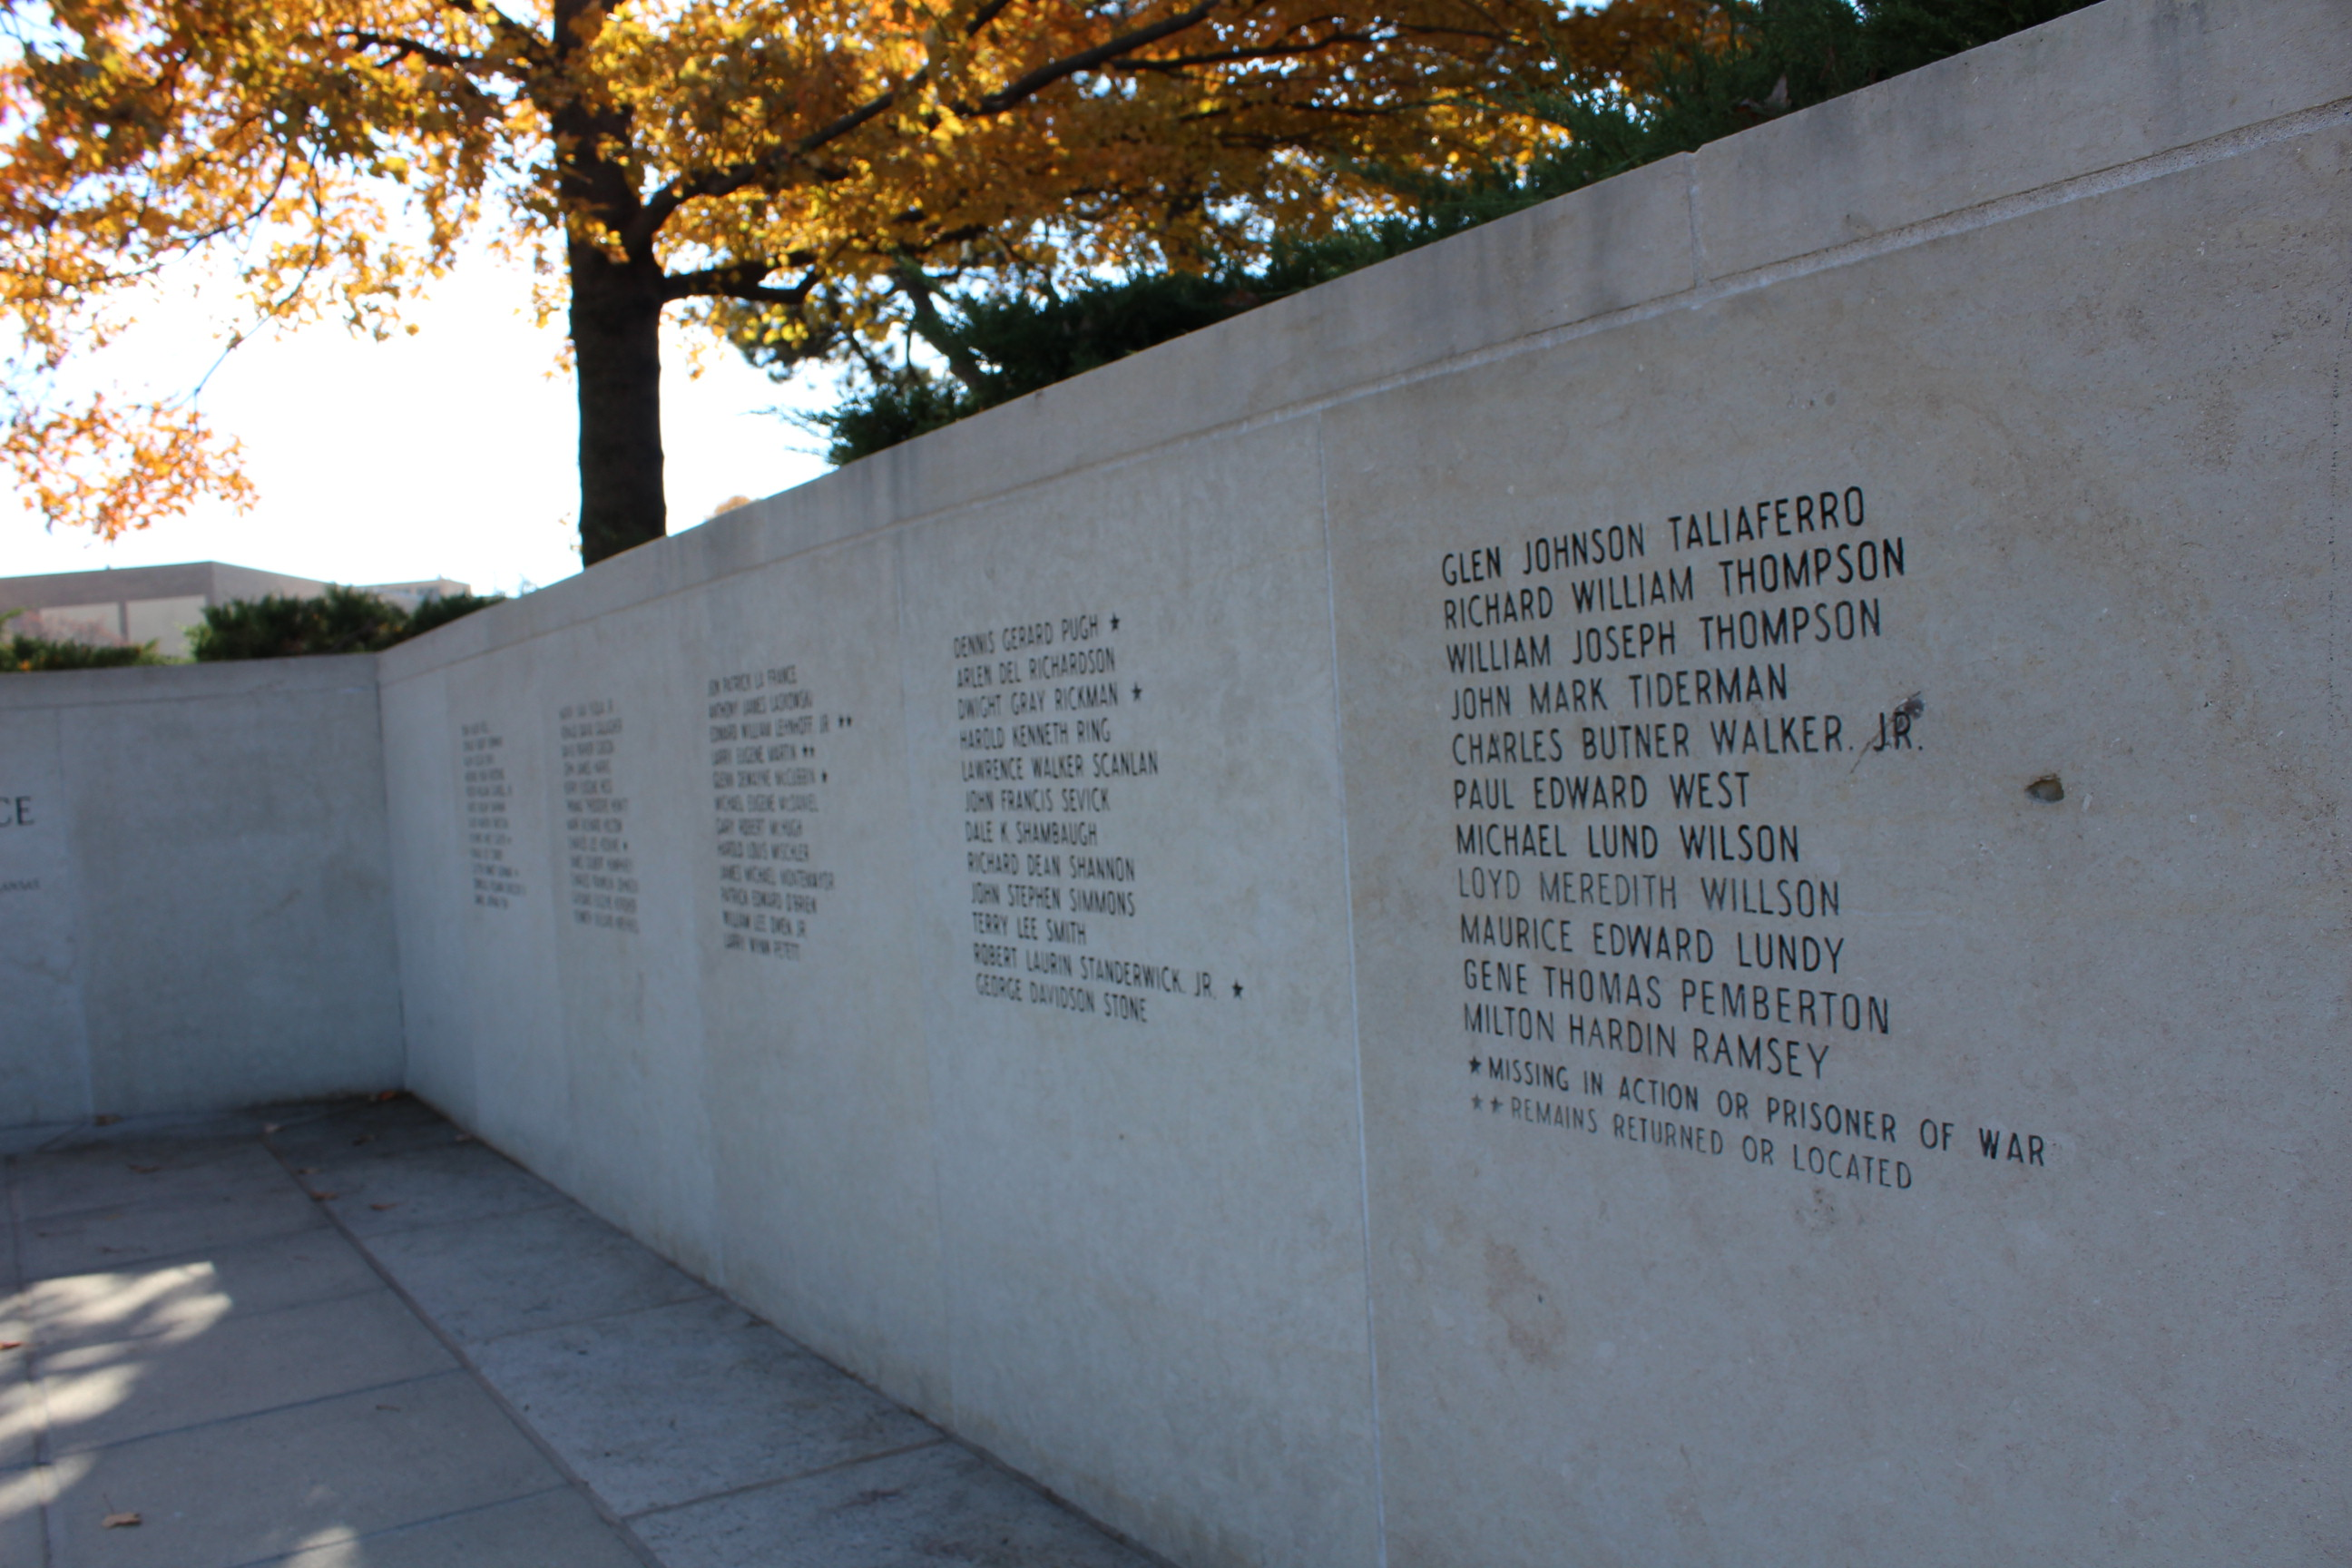 This section of the KU Vietnam War memorial lists the 57 names of students and alumni killed or listed as missing in Vietnam. (Photo by J. Schafer)